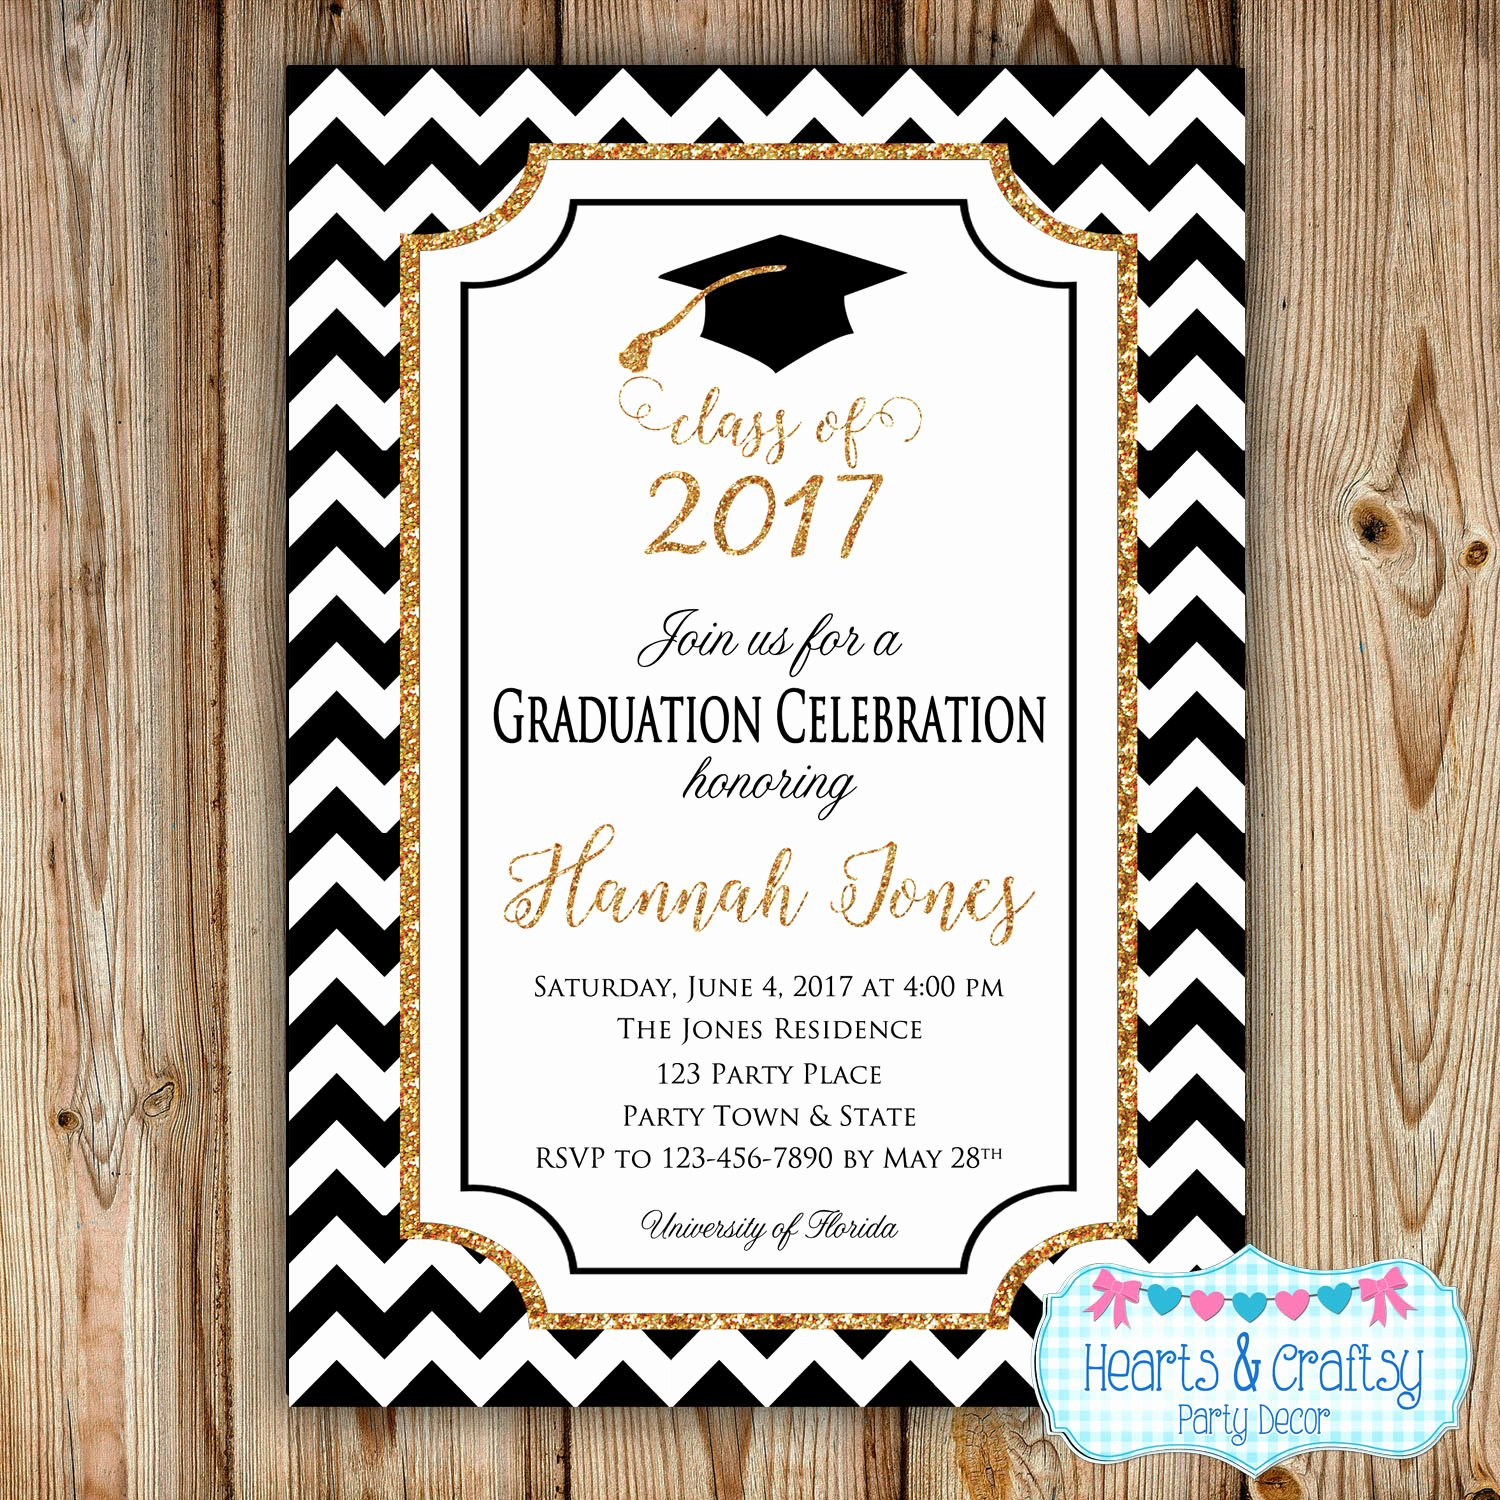 Free Graduation Announcements Templates Inspirational Graduation Party Invitation College Graduation Invitation